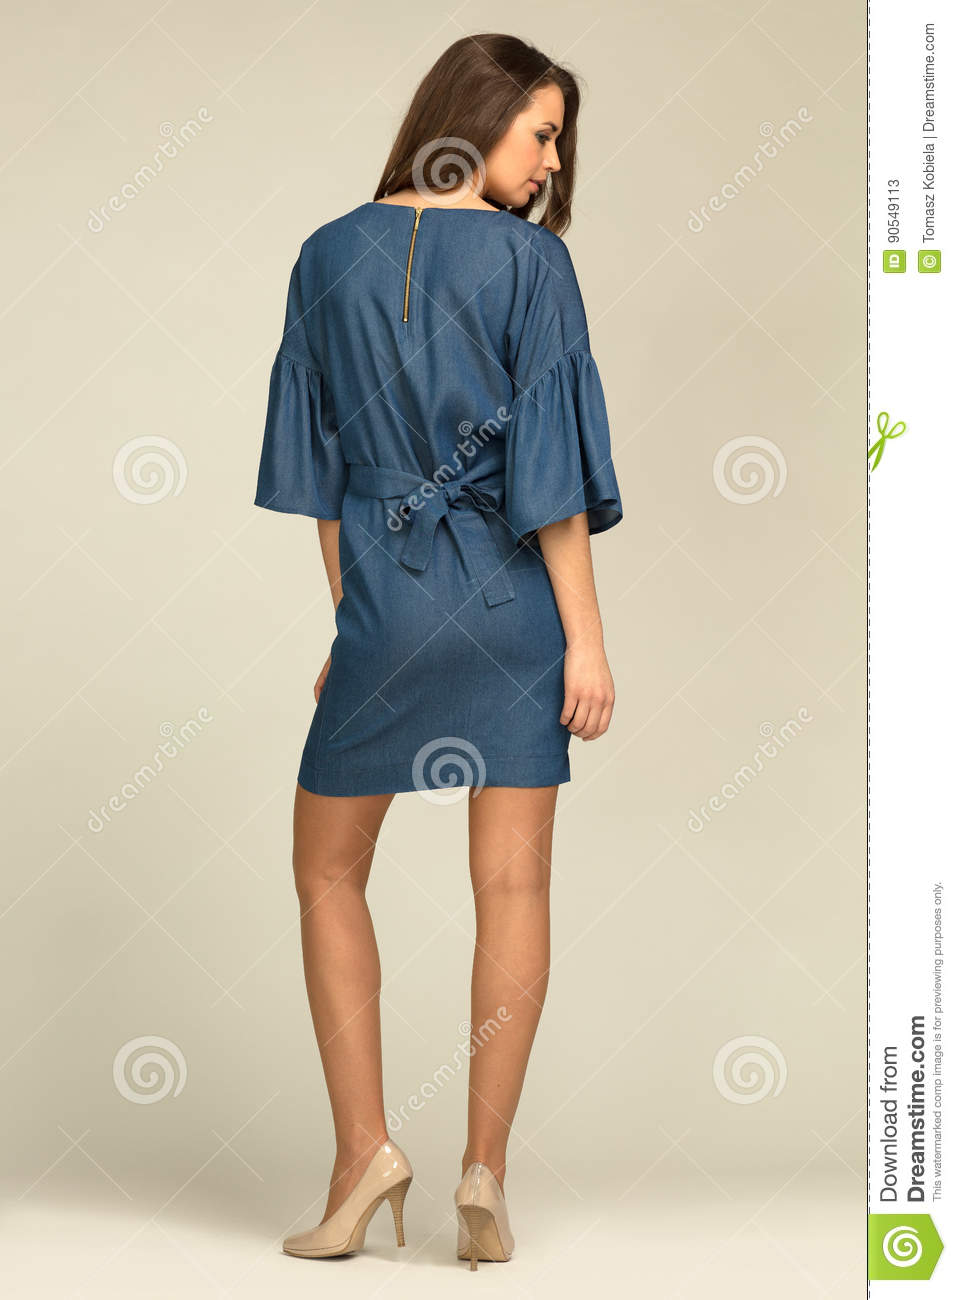 Young model wearing blue, jeans dress with slim body.